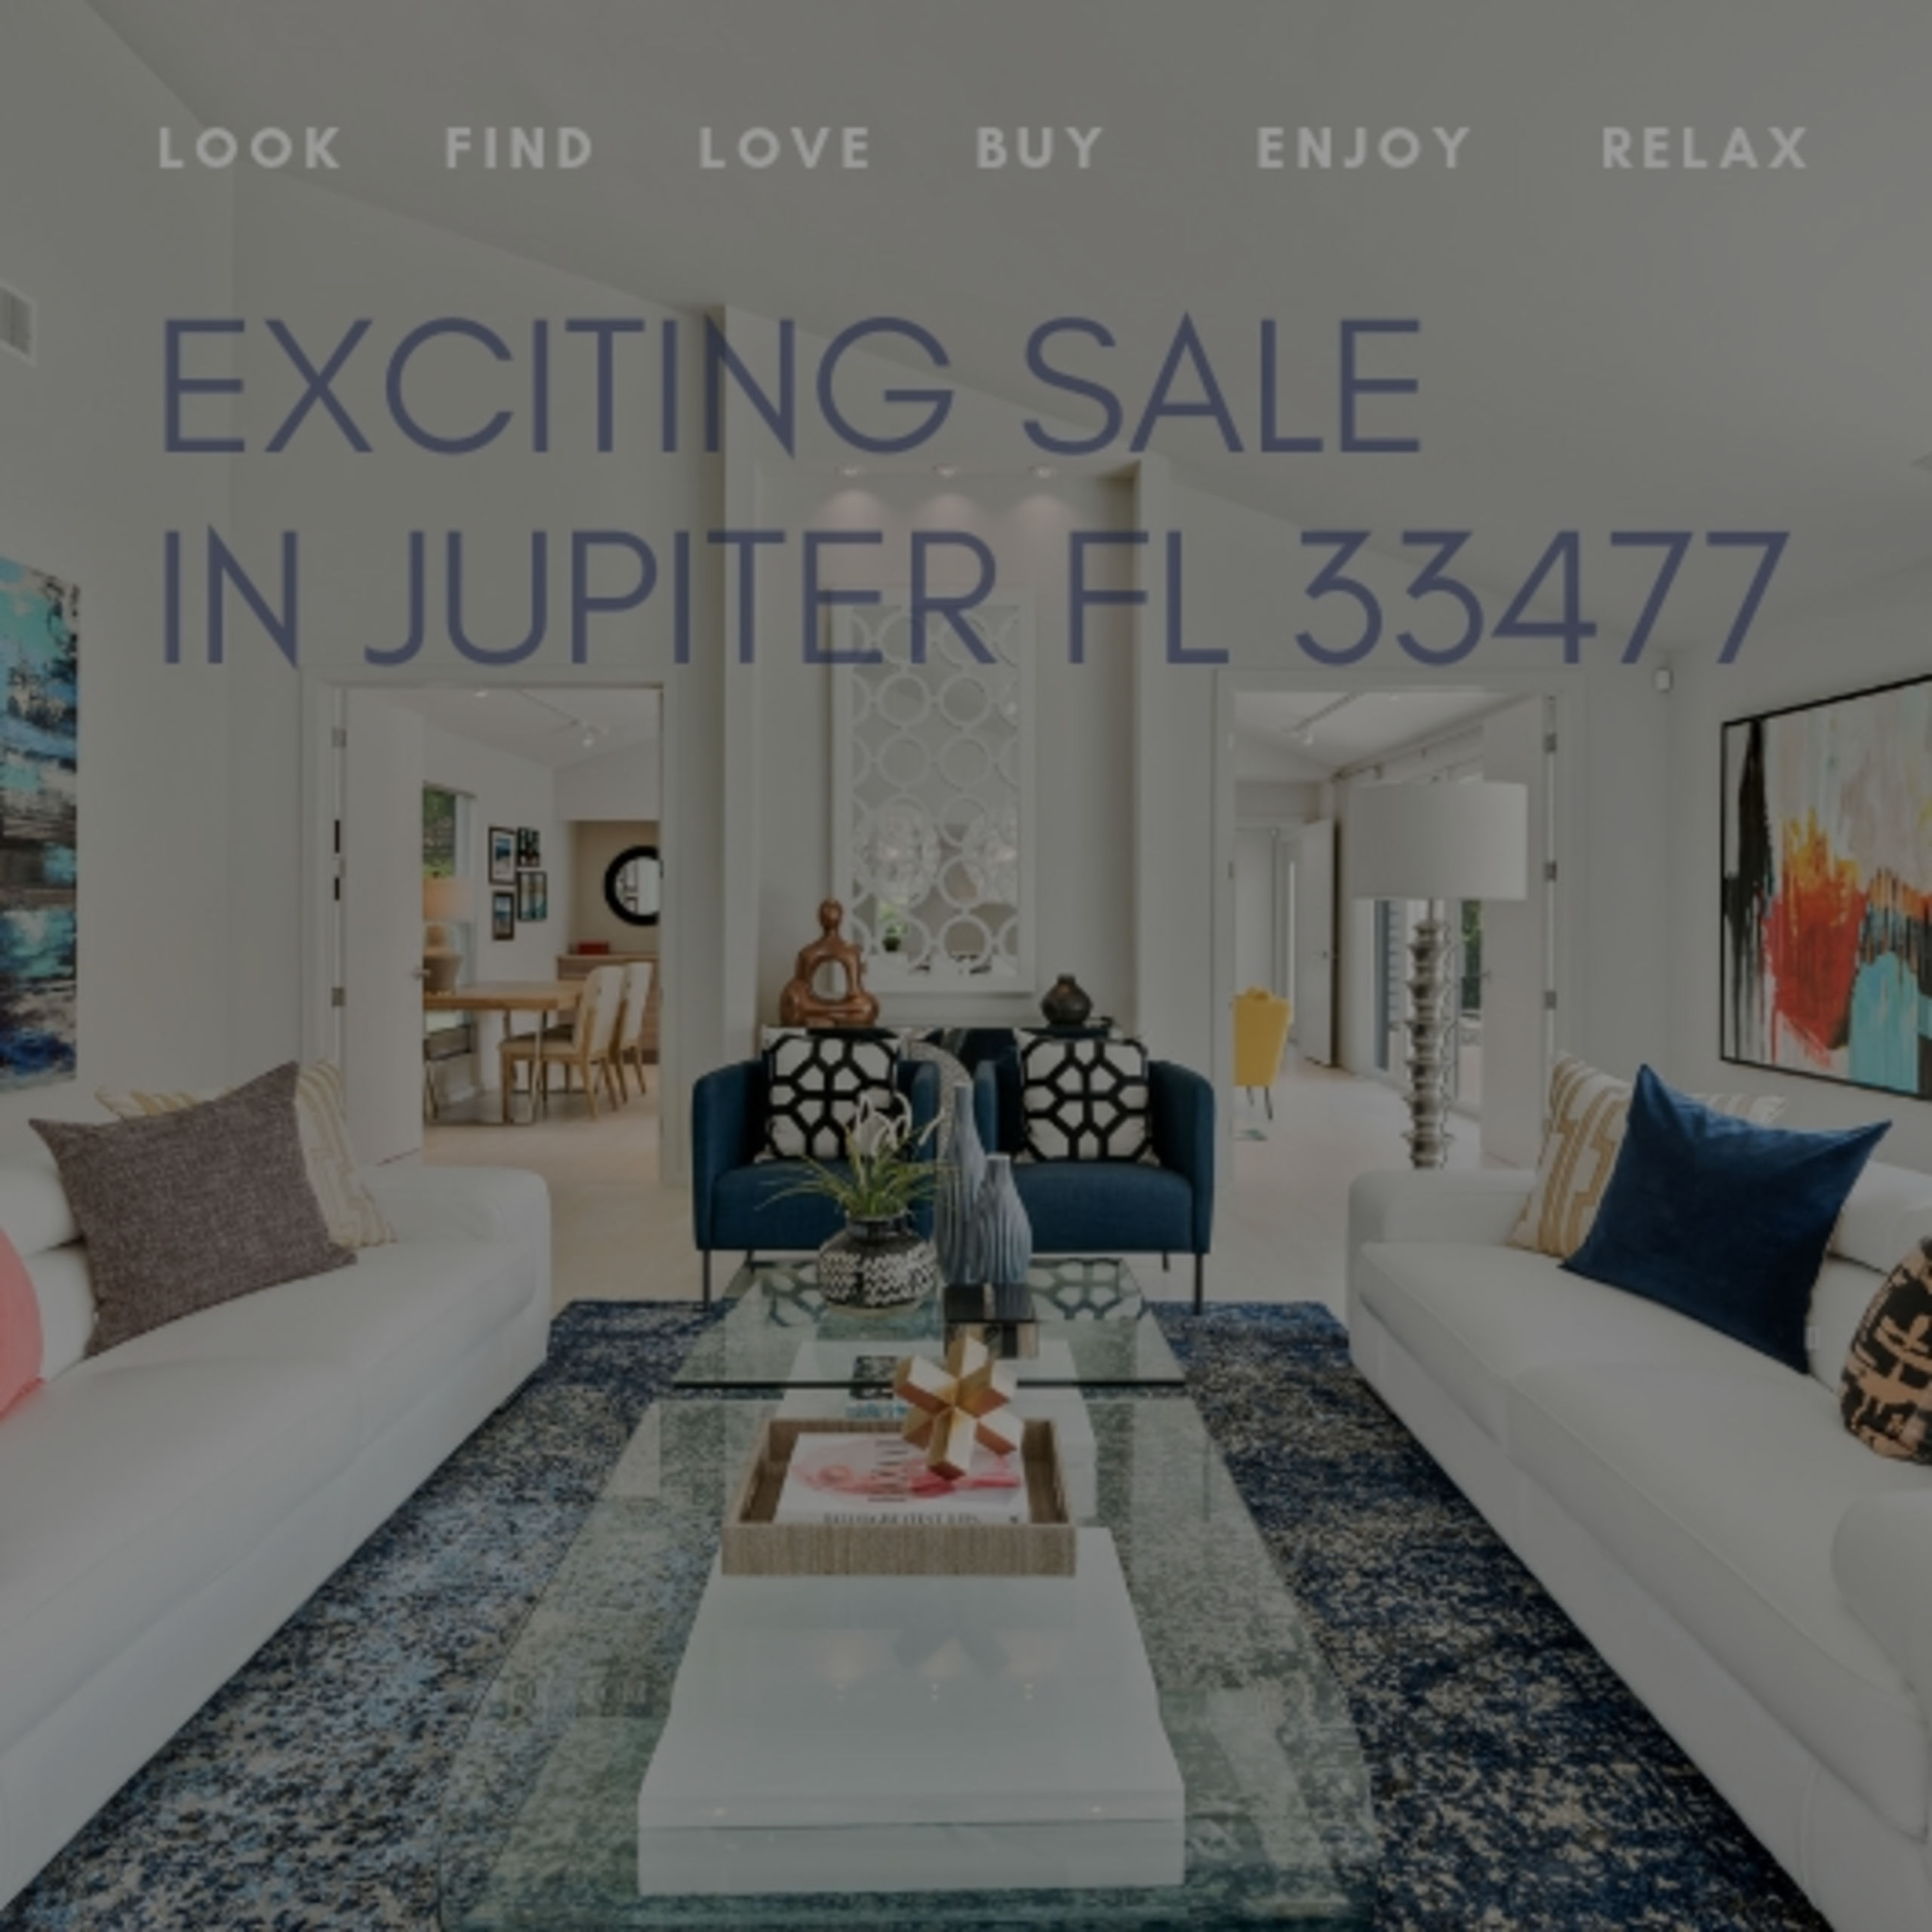 Sold by Jupiter Beach